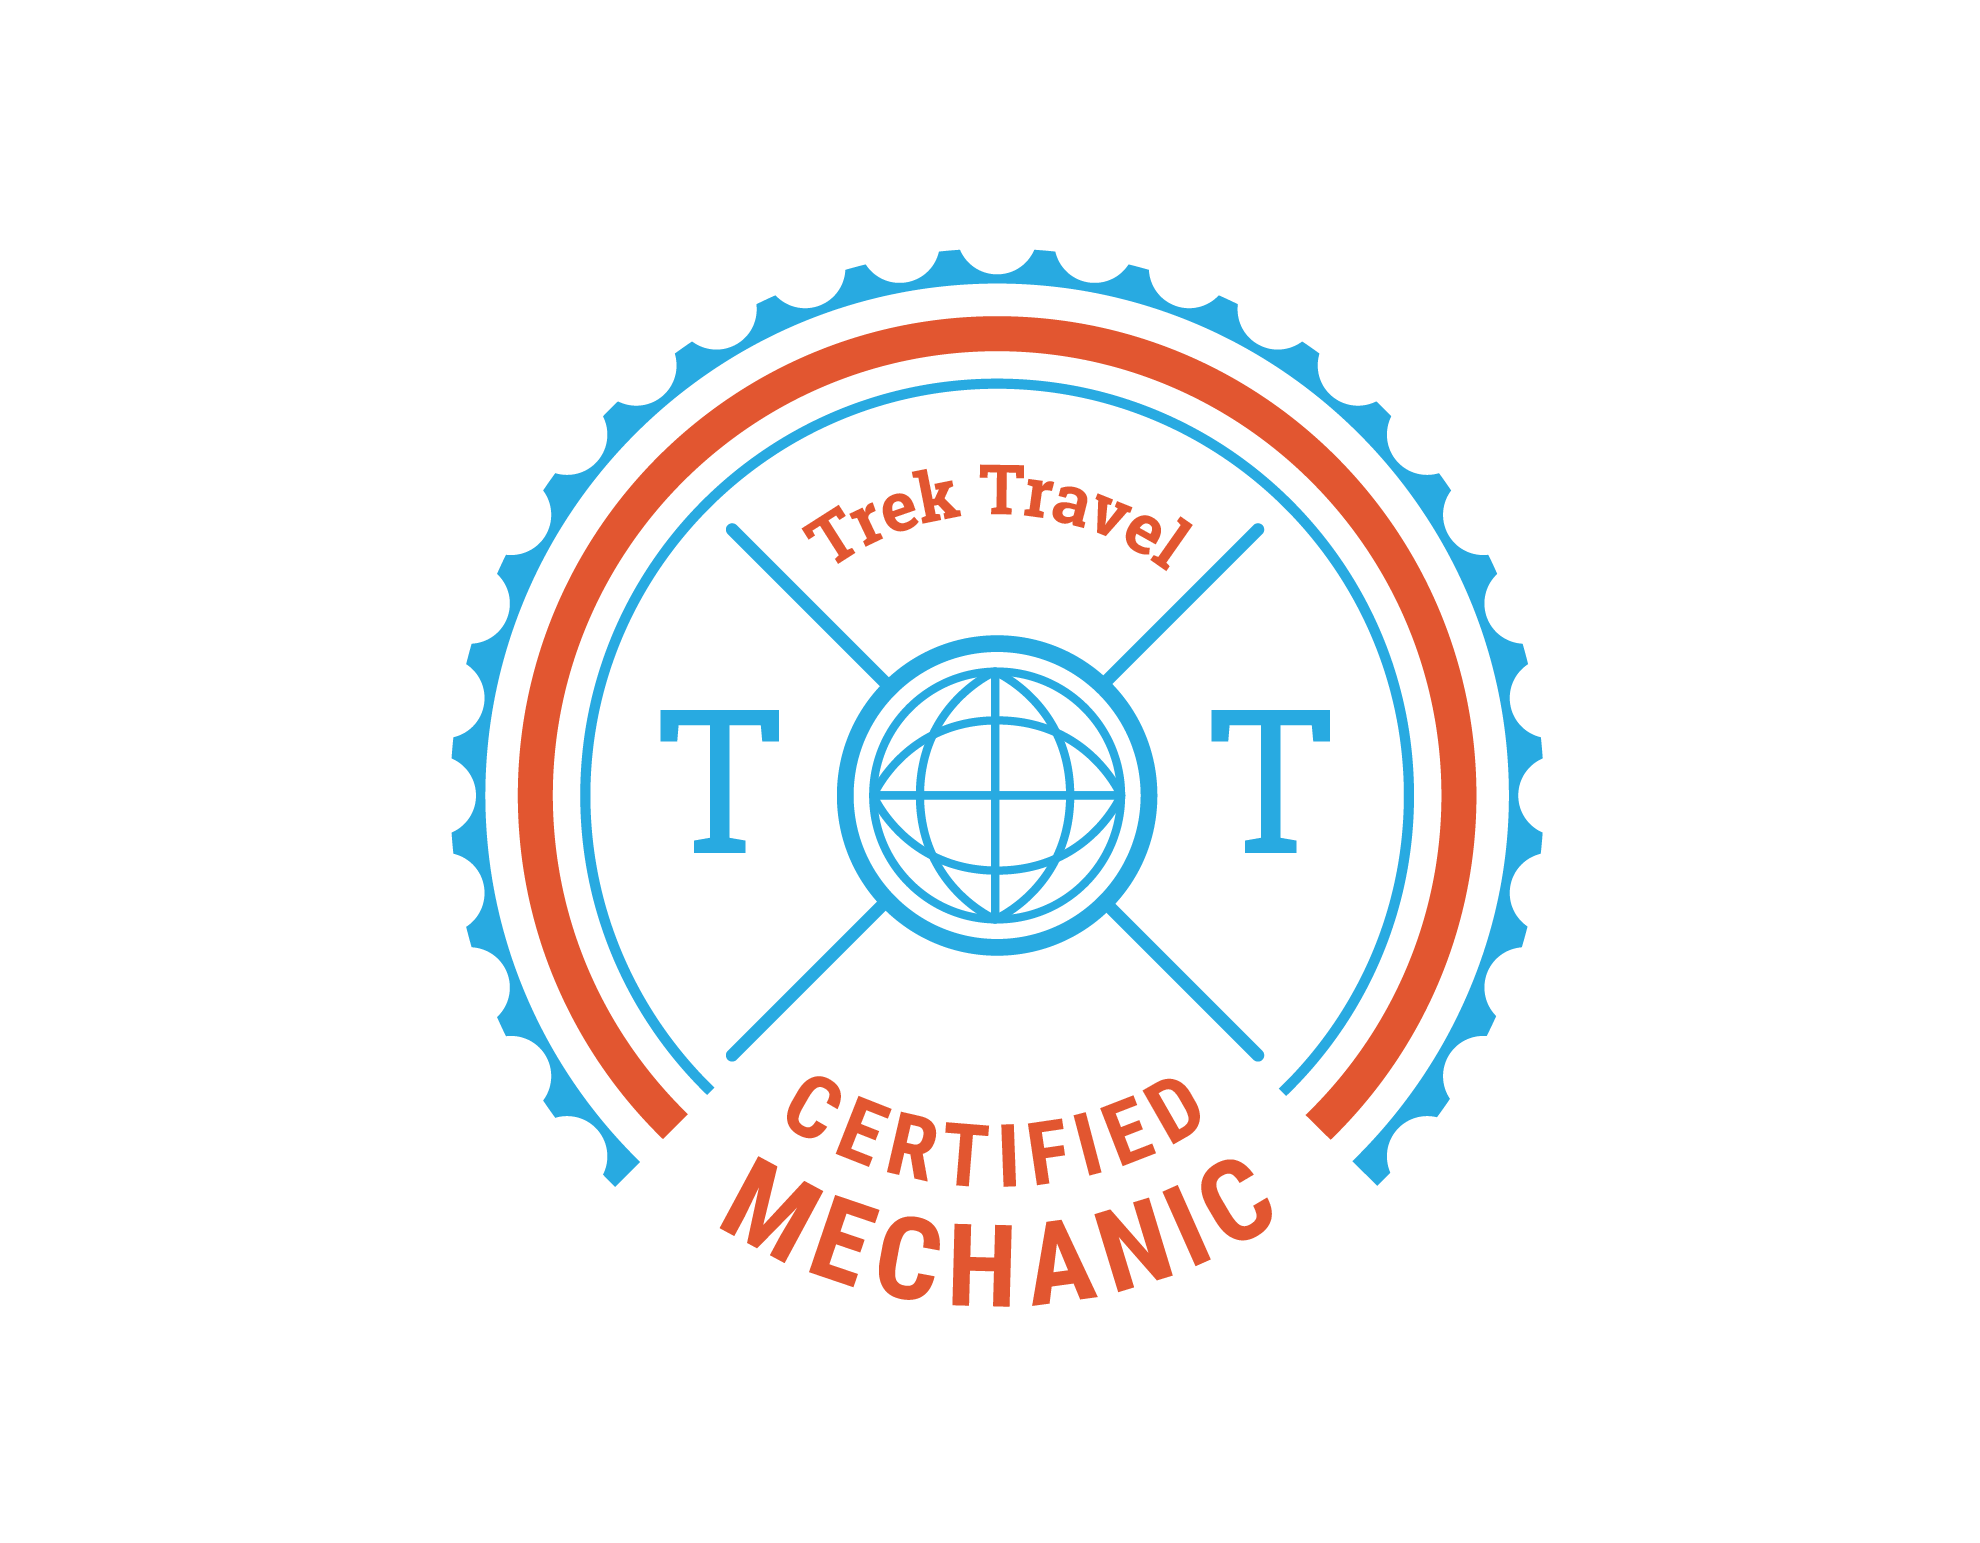 Trek Travel Certified Mechanics